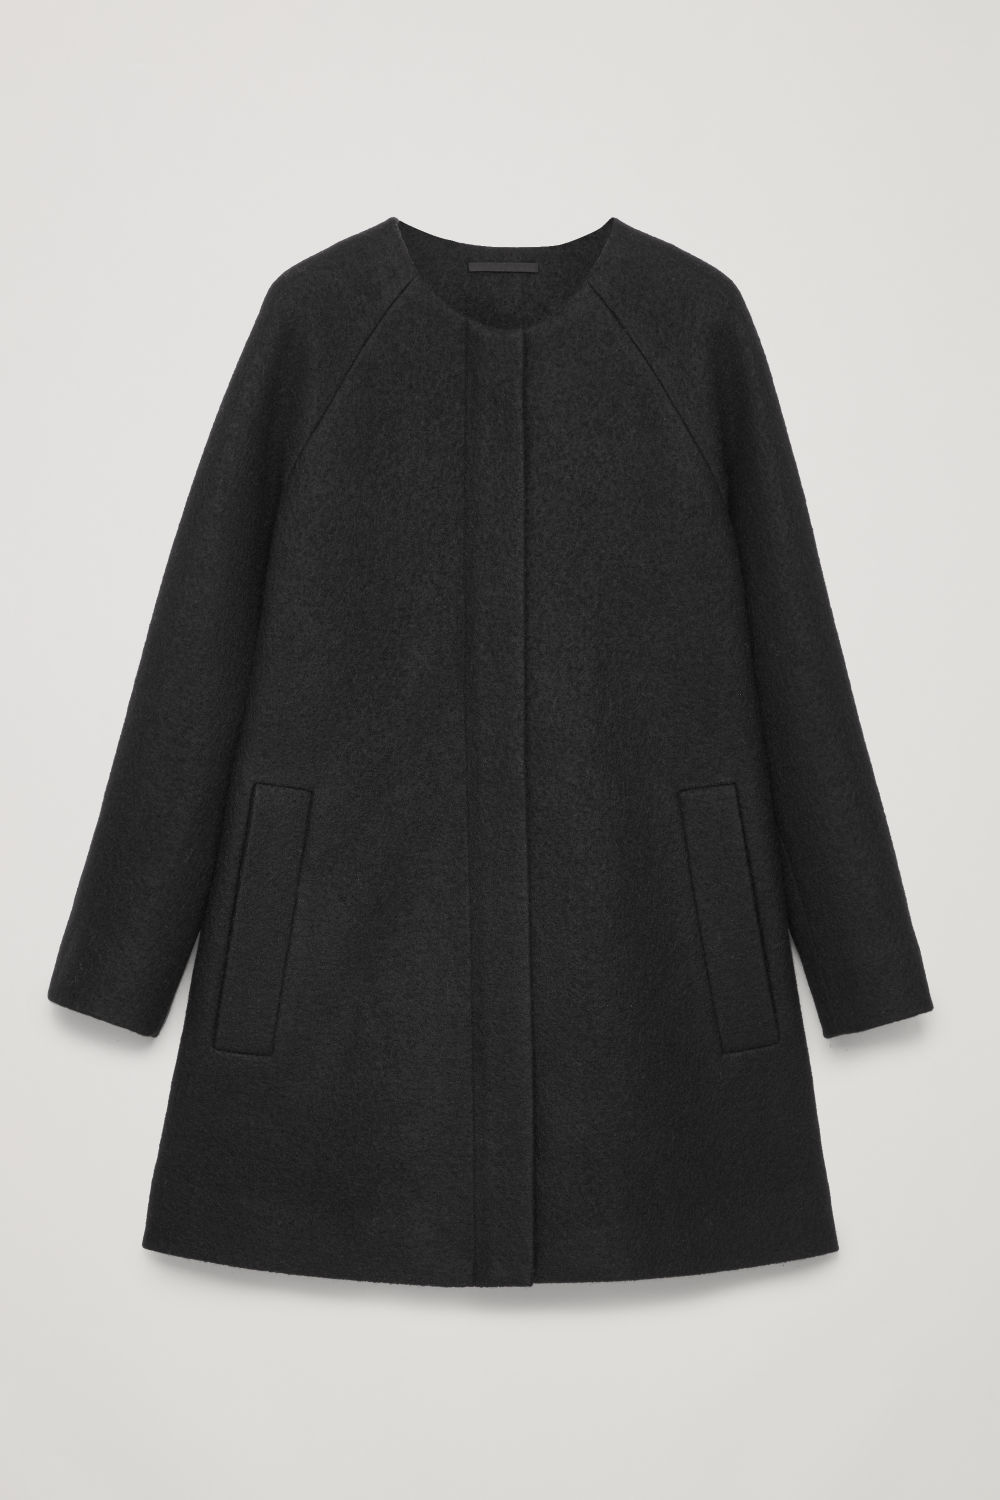 A-LINE WOOL COAT WITH POCKETS